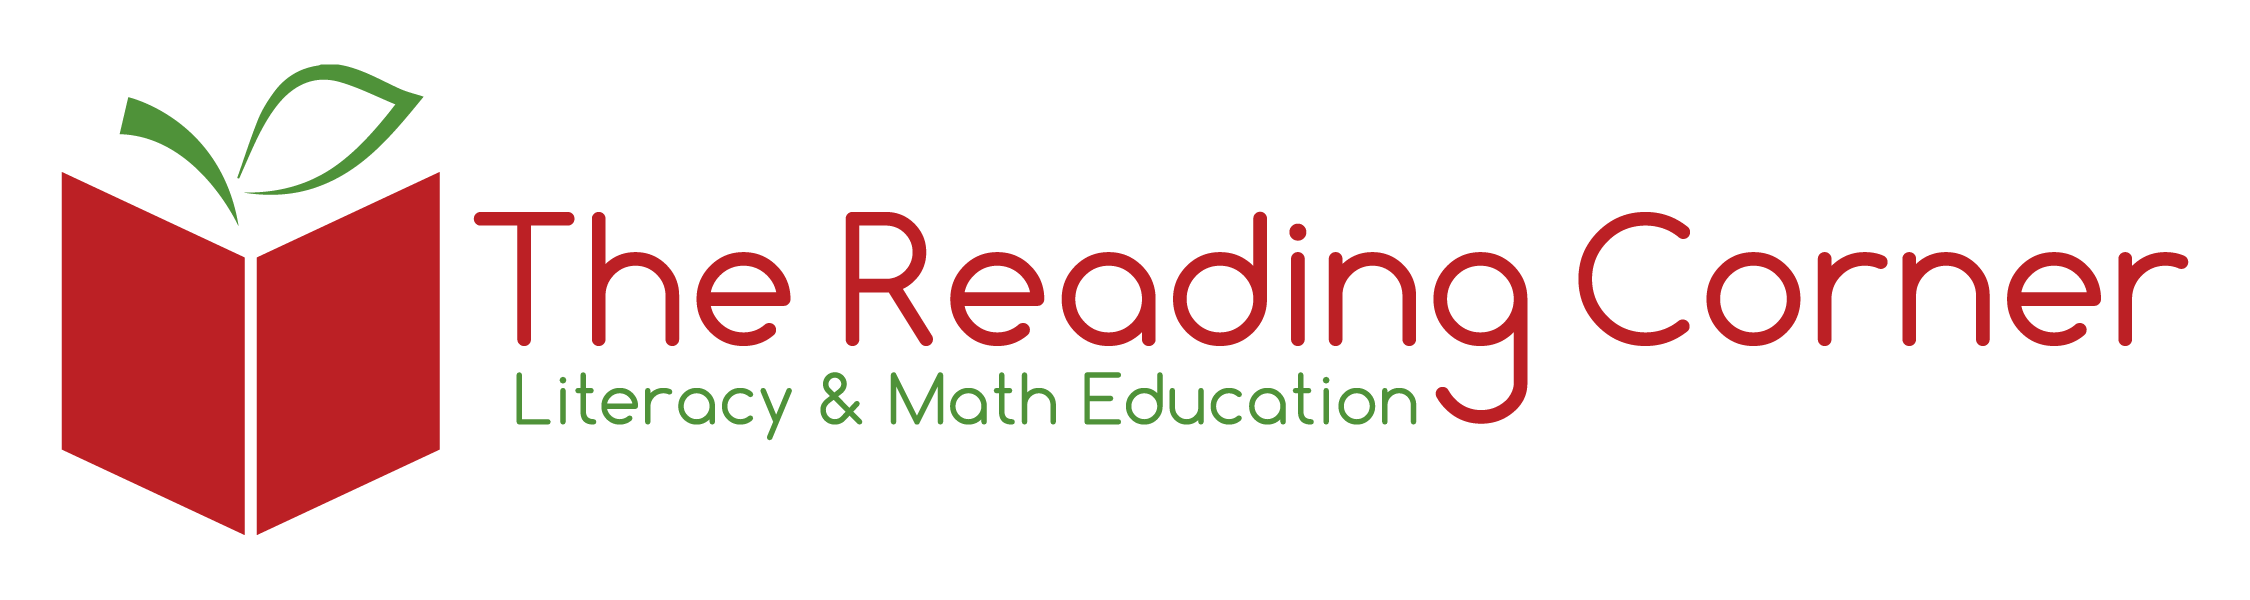 Reading Corner Online - Help Your Child Master Early Literacy & Math